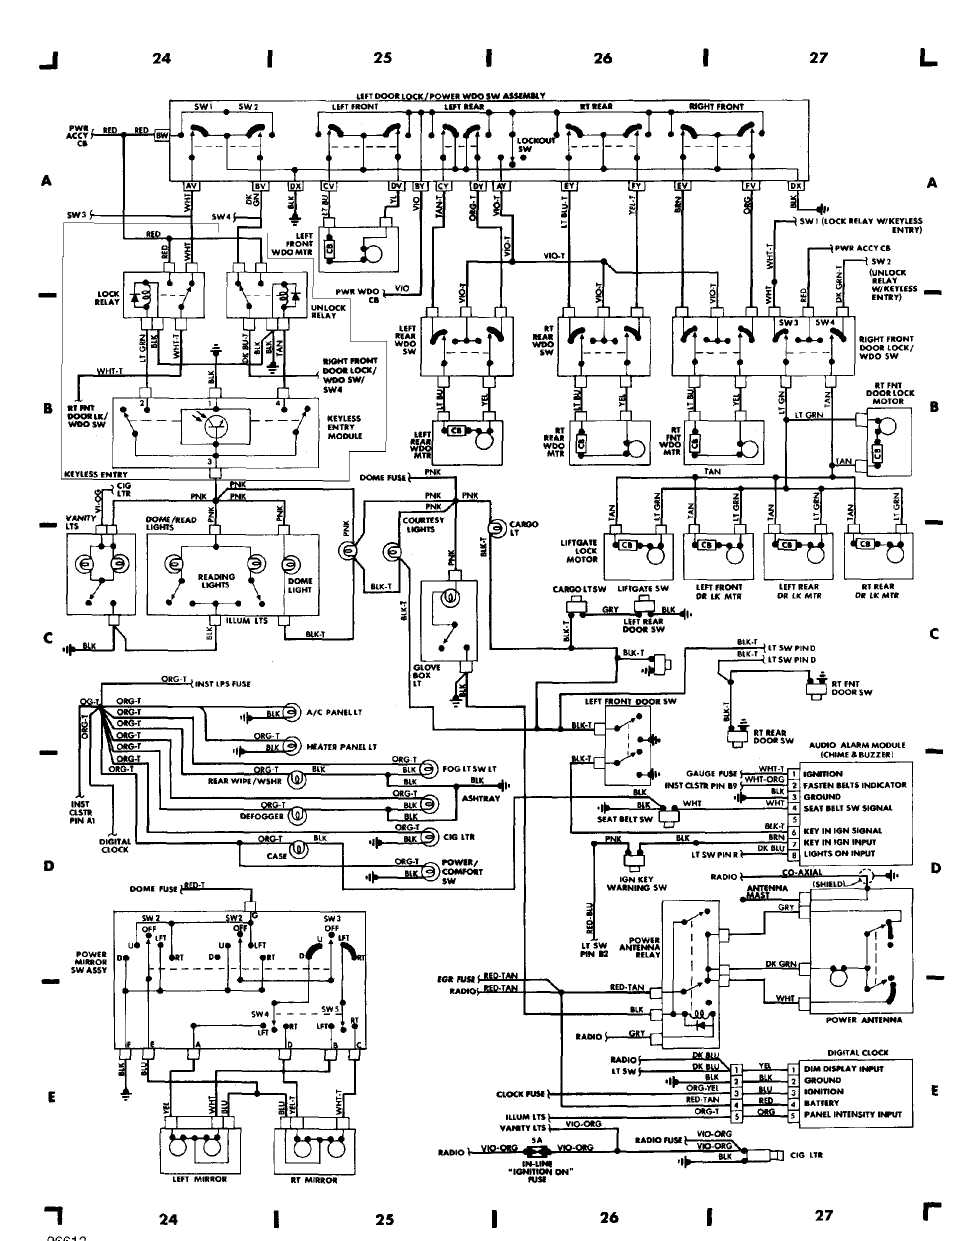 97 Jeep Wrangler Engine Diagram Wiring Schematic 2019 2003 4 Liter 2001 Just Data Rh Ag Skiphire Co Uk 1997 25